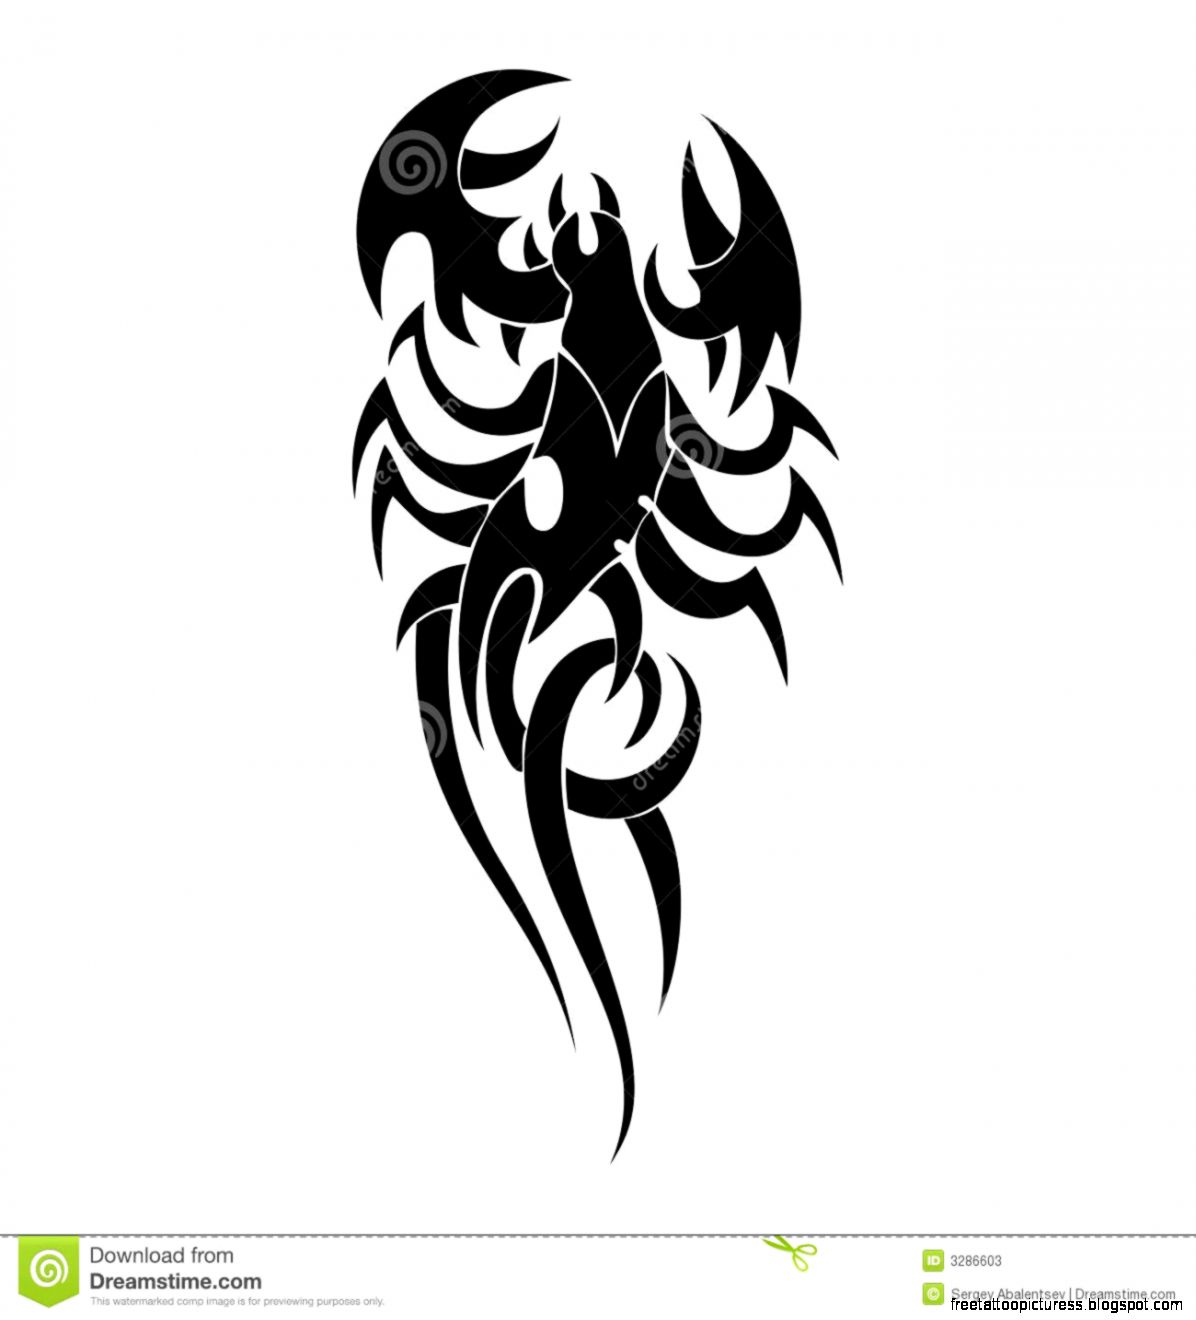 Scorpion Tatoo Royalty Free Stock Photos   Image 3286608